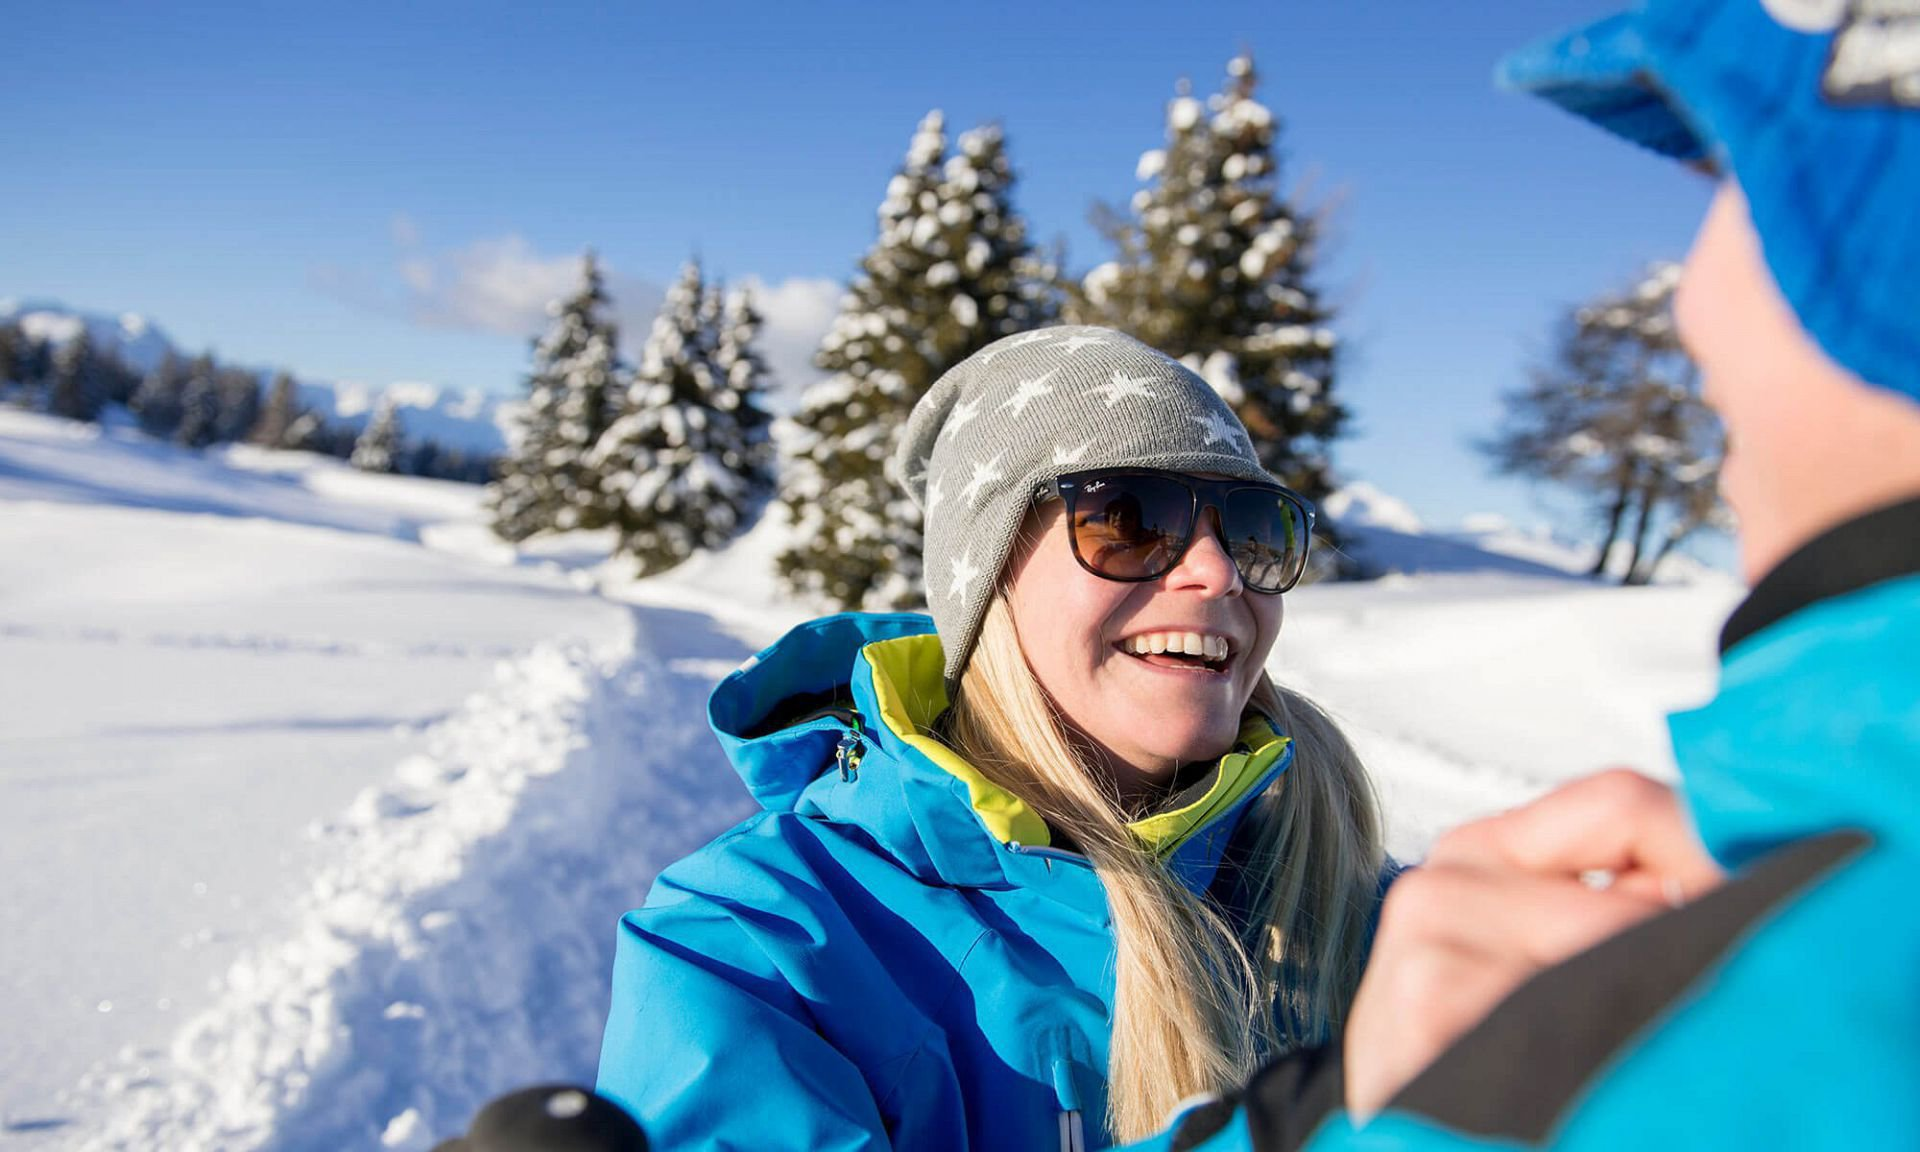 Winter fun during your winter vacation in the Alps